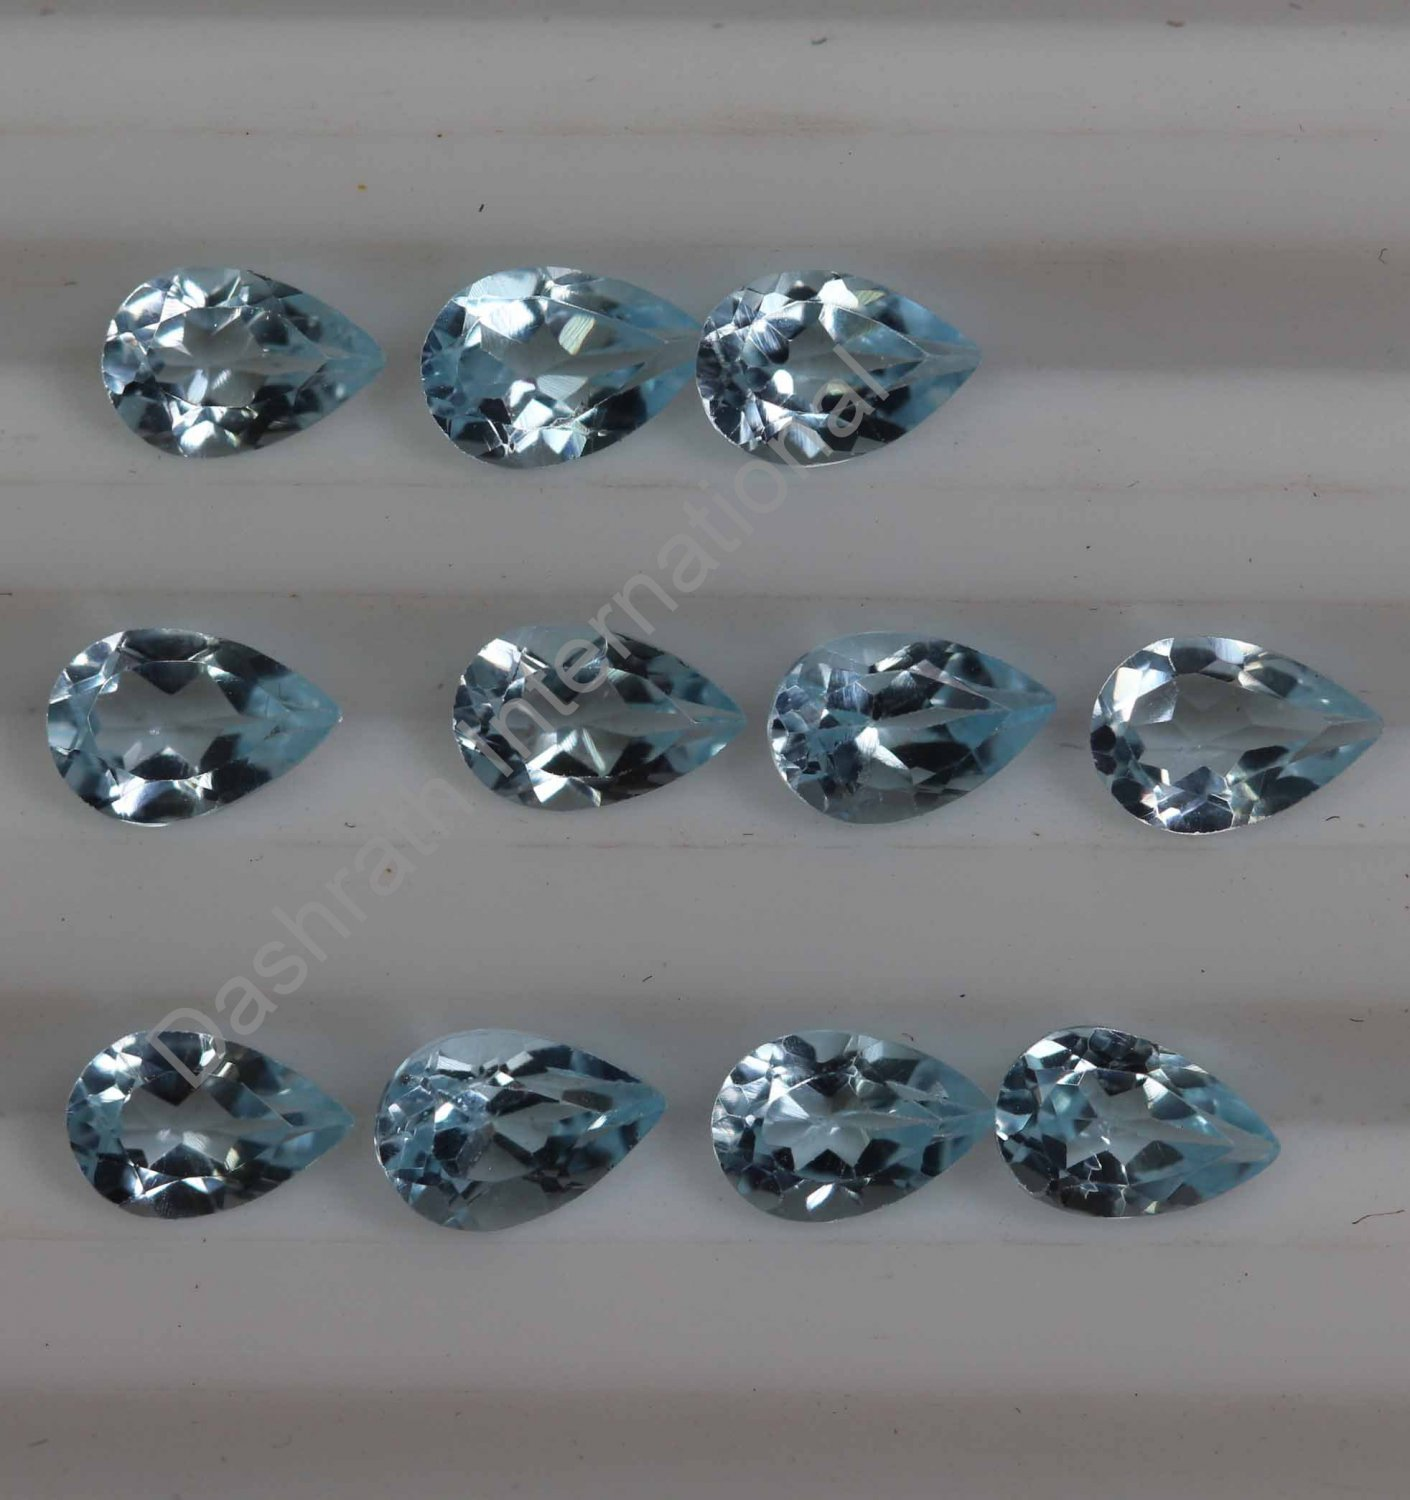 7x5mm  Natural Sky Blue Topaz Faceted Cut Pear 50 Pieces Lot  Top Quality Loose Gemstone